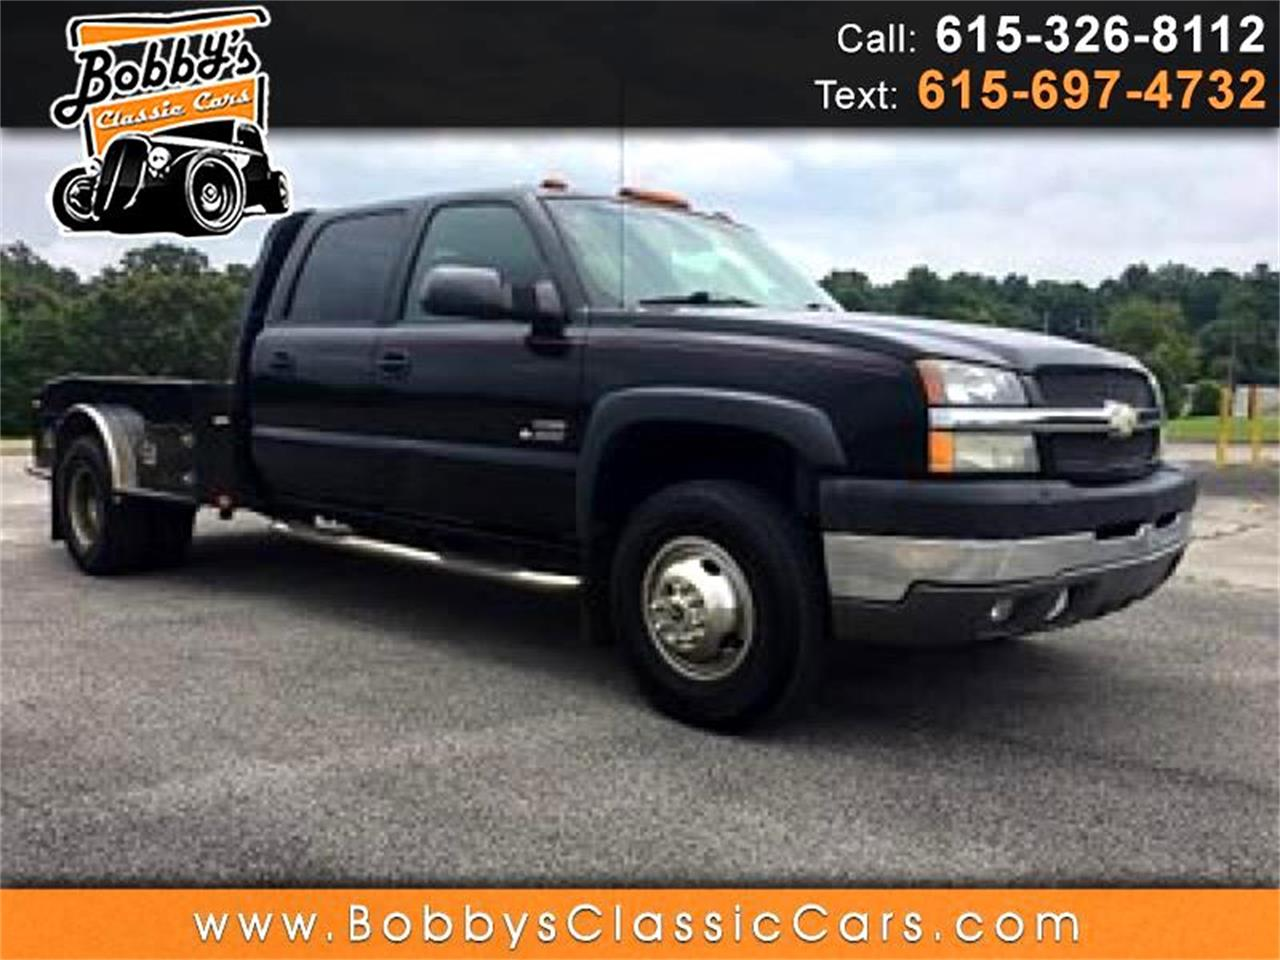 2004 Chevrolet Silverado (CC-1361708) for sale in Dickson, Tennessee